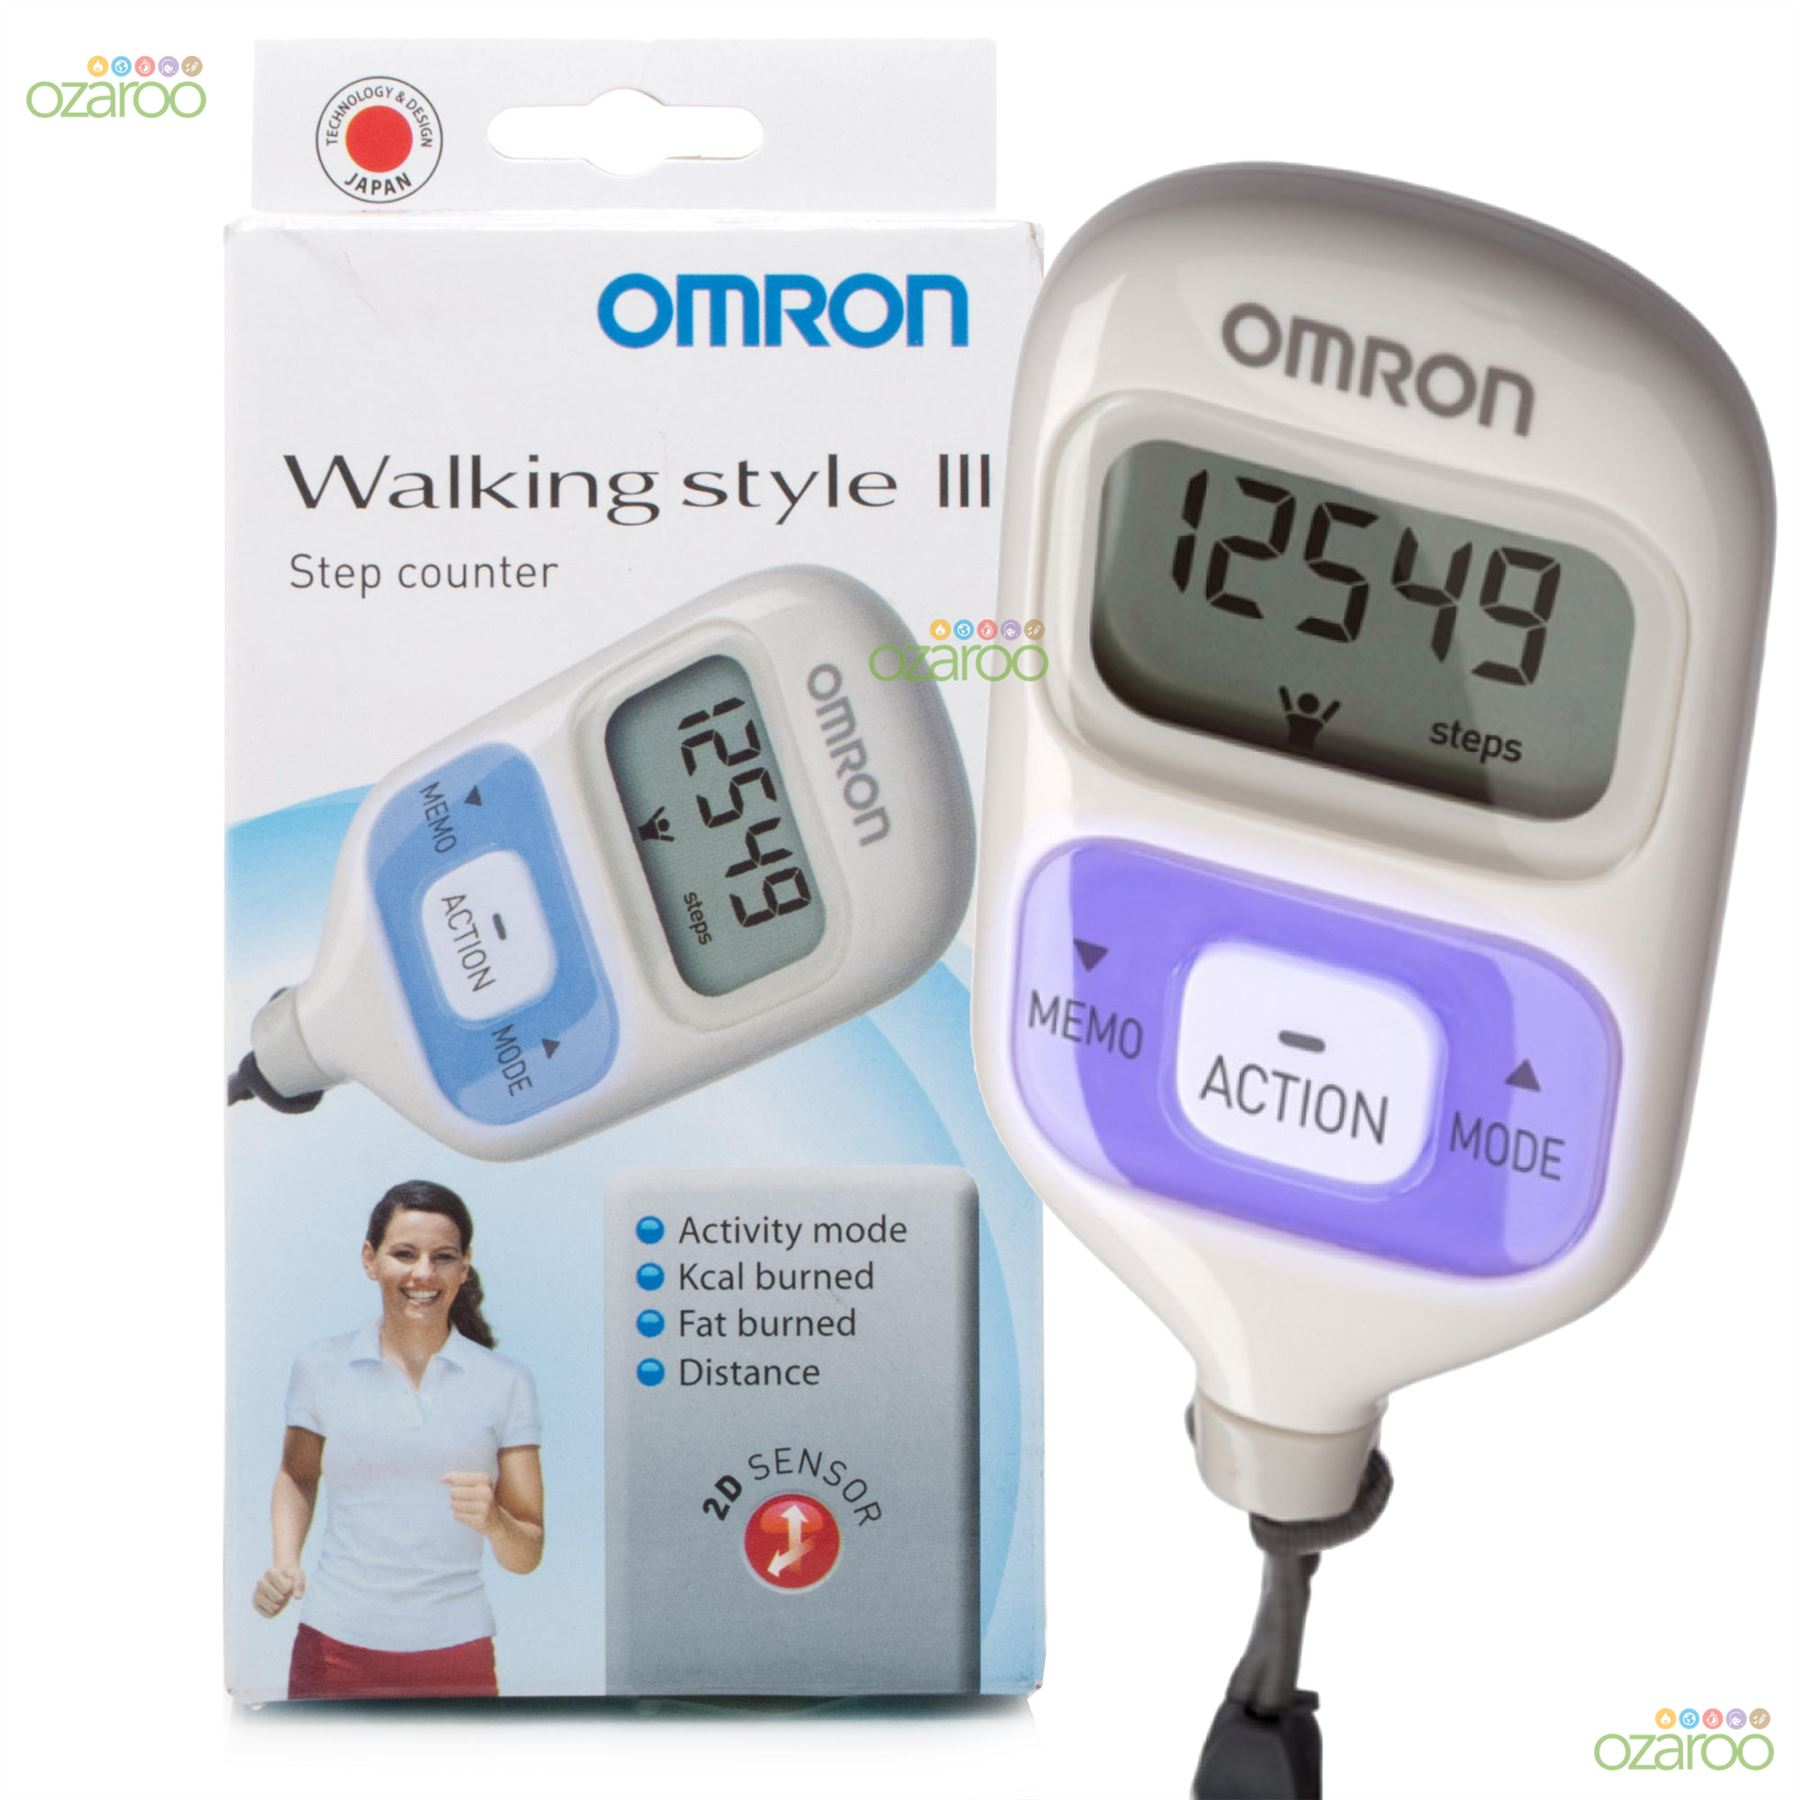 omron walking style iii pedometer light weight step run. Black Bedroom Furniture Sets. Home Design Ideas